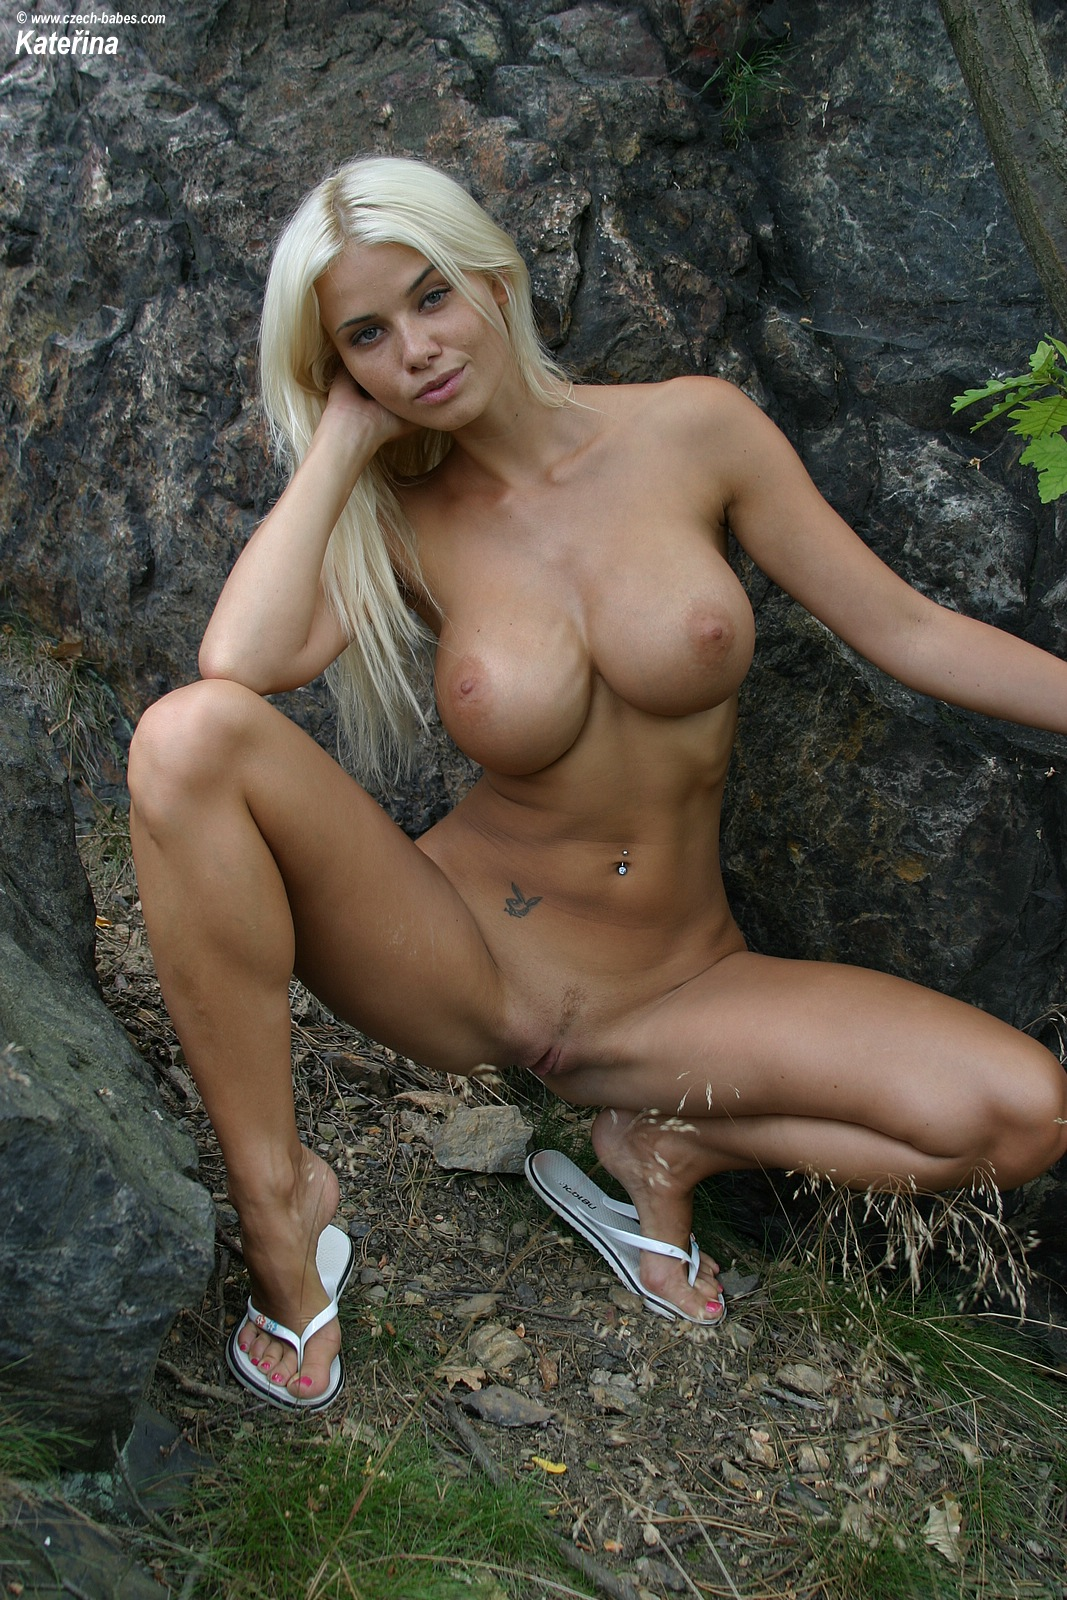 katerina-blonde-boobs-flip-flops-outdoor-naked-28